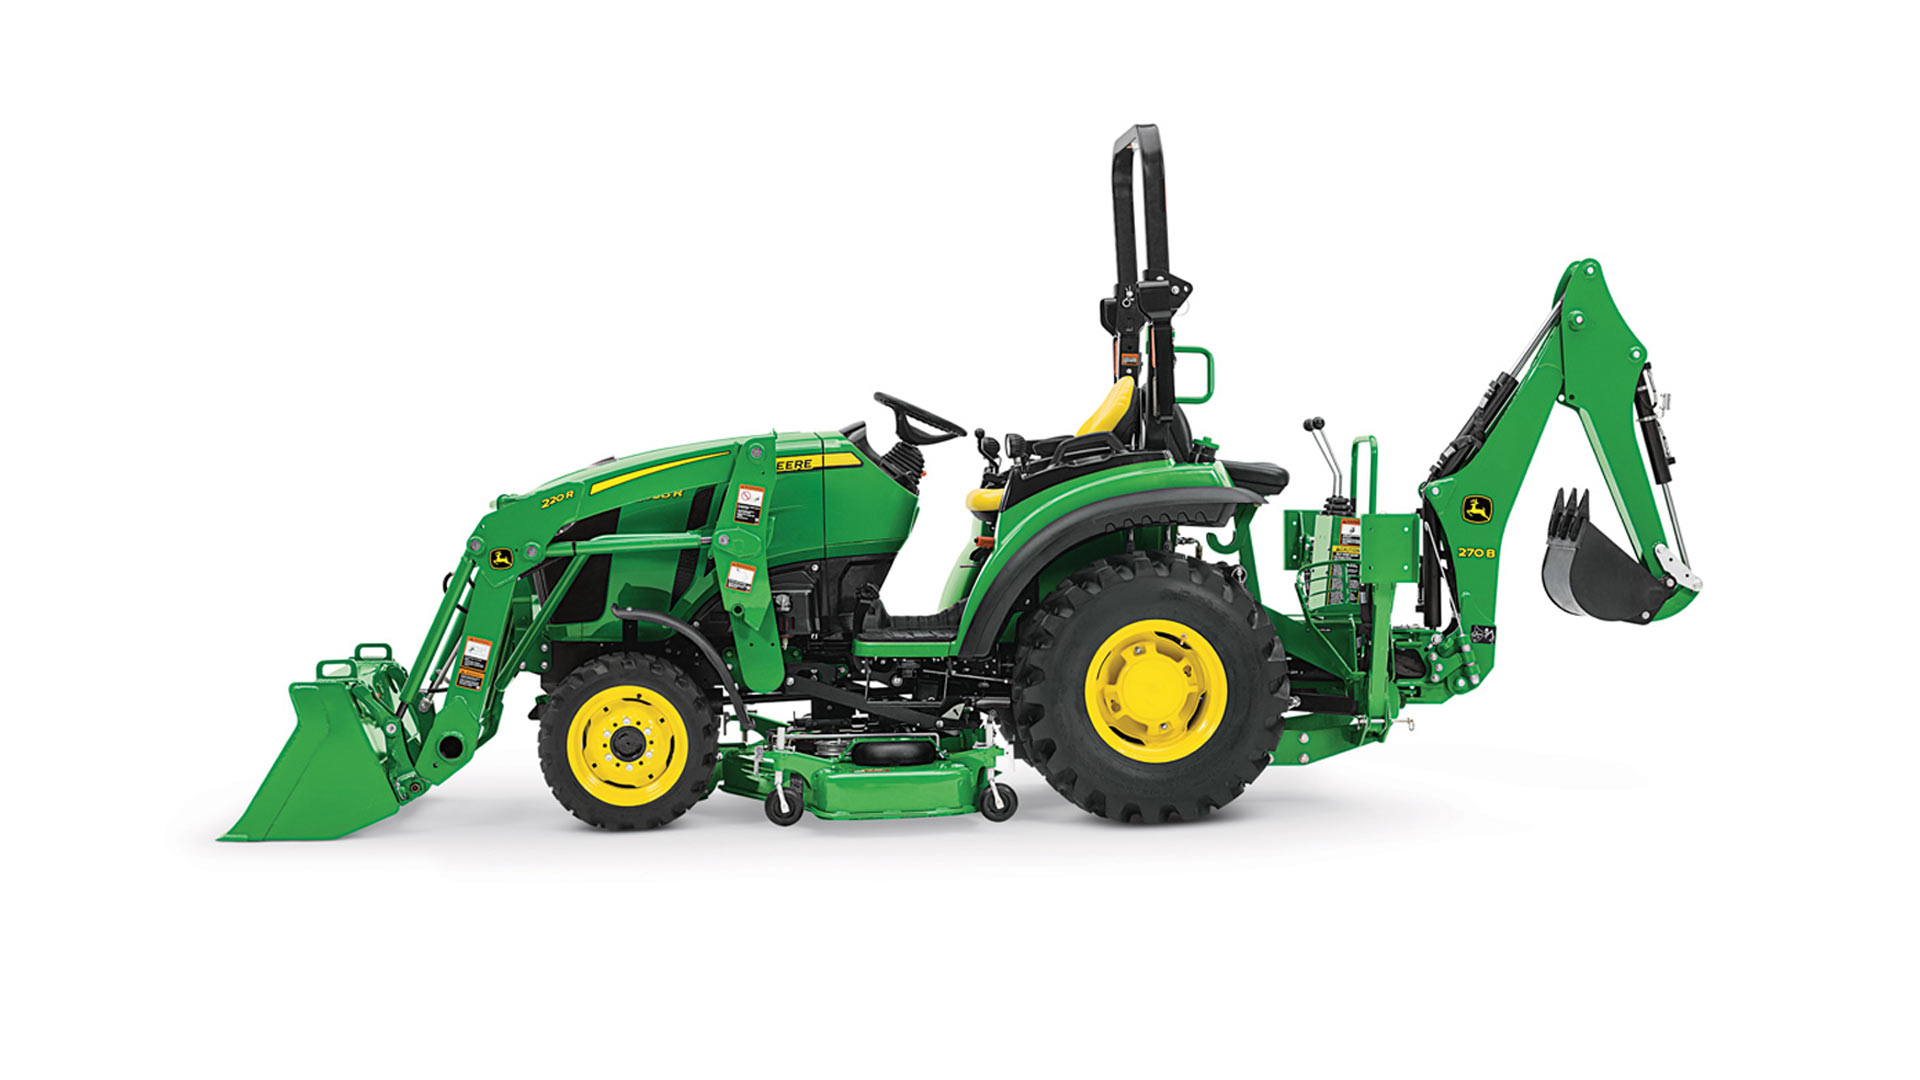 Utility Tractor Attachments & Implements   John Deere US